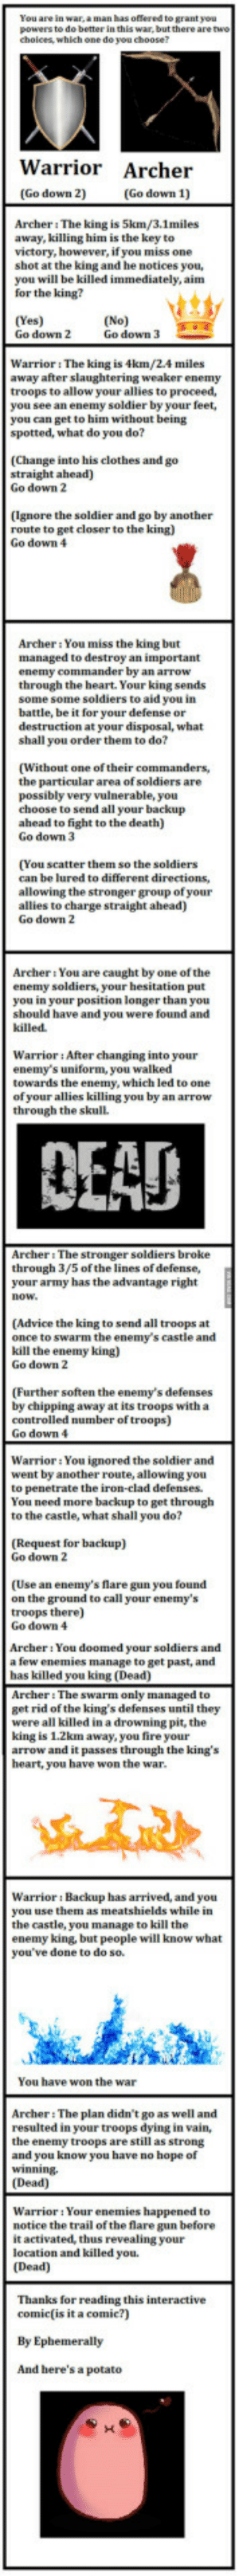 Advice, Clothes, and Fire: You are in war, a man has offered to grant yeu  choices, which one do you choose?  Warrior Archer  (Go down 2)  Archeri The king is 5km/3.1miles  away, killing him is the key to  victory, however, if you miss one  shot at the king and he notices you,  you will be killed immediately, aim  for the king?  (Yes)  Go down 2  Go down 3  Warrior: The king is 4km/2.4 miles  away after slaughtering weaker enemy  troops to allow your allies to proceed,  you see an enemy soldier by your feet,  you can get to him without being  spotted, what do you do?  (Change into his clothes and go  straight ahead)  Go down 2  (Ignore the soldier and go by another  route to get closer to the king)  Go dowm 4  Archer: You miss the king but  managed to destroy an important  enemy commander by an arrow  through the heart. Your king sends  some some soldiers to aid you in  battle, be it for your defense or  destruction at your disposal, what  shall you order them to do?  (Without one of their commanders,  the particular area of soldiers are  possibly very vulnerable, you  choose to send all your backup  ahead to fight to the death)  Go dowm 3  (You scatter them so the soldiers  can be lured to different directions,  allowing the stronger group of your  allies to charge straight ahead)  Go down 2  Archer: You are caught by one of the  enemy soldiers, your hesitation put  you in your position longer than you  should have and you were found and  killed  Warrior: After changing into your  enemy's uniform, you walked  towards the enemy, which led to one  of your allies killing you by an arrow  through the skull  EAD  Archeri The stronger soldiers broke  through 3/5 of the lines of defense,  your army has the advantage right  Advice the king to send all troops at  once to swarm the enemy's castle and  kill the enemy king)  Go down 2  (Further soften the enemy's defenses  by chipping away at its troops with a  controlled number of troops)  Go down 4  Warrior:You ignored the soldier and  went by another route, allowing you  to penetrate the iron-clad defenses.  You need more backup to get through  to the castle, what shall you do?  (Request for backup)  Go down 2  (Use an enemy's lare gun you found  on the ground to call your enemy's  troops there)  Go down 4  Archer: You doomed your soldiers and  a few enemies manage to get past, and  has killed you king (Dead)  Archer: The swarm only managed to  get rid of the king's defenses until they  were all killed in a drowning pit, the  king is 1.2km away, you fire your  arrow and it passes t  heart, you have won the war  the  WarriorBackup has arrived, and you  you use them as meatshields while in  the castle, you manage to kill the  enemy king, but people will know what  you've done to do so.  You have won the war  Archer: The plan didn't go as well and  resulted in your troops dying in vain,  the enemy troops are still as strong  and you know you have no hope of  (Dead)  Warrior: Your enemies happened to  notice the trail of the flare gun before  it activated, thus revealing your  location and killed you.  Thanks for reading this interactive  comic(is it a comic?)  And here's a potate Interative comic, after seeing the zombie one the other day I wanted to do one